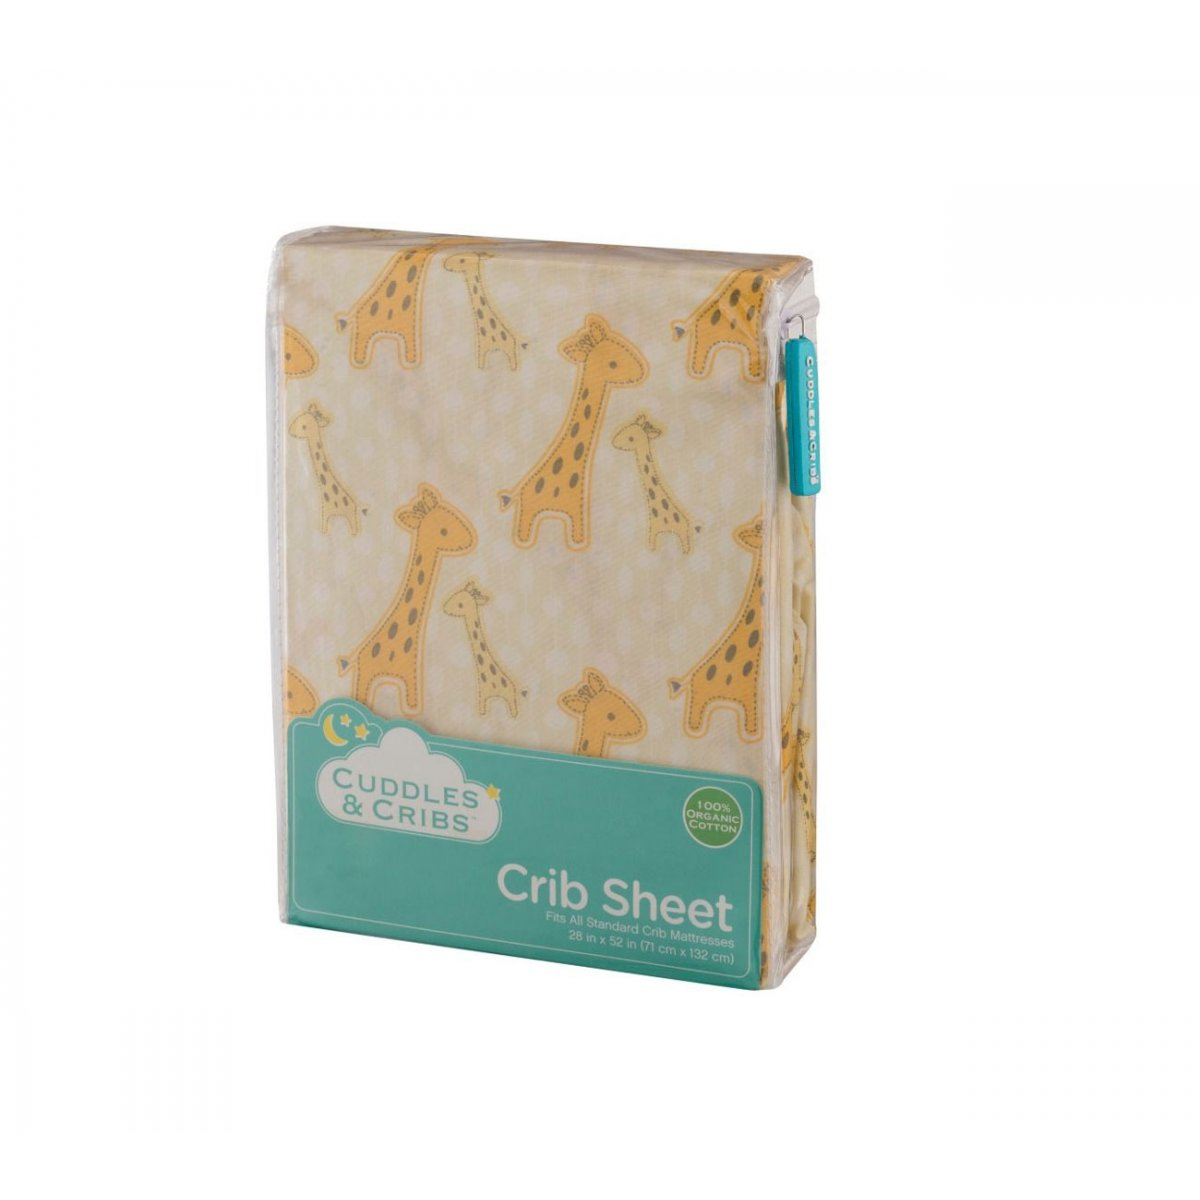 Giraffe Crib Sheet 1 Pack